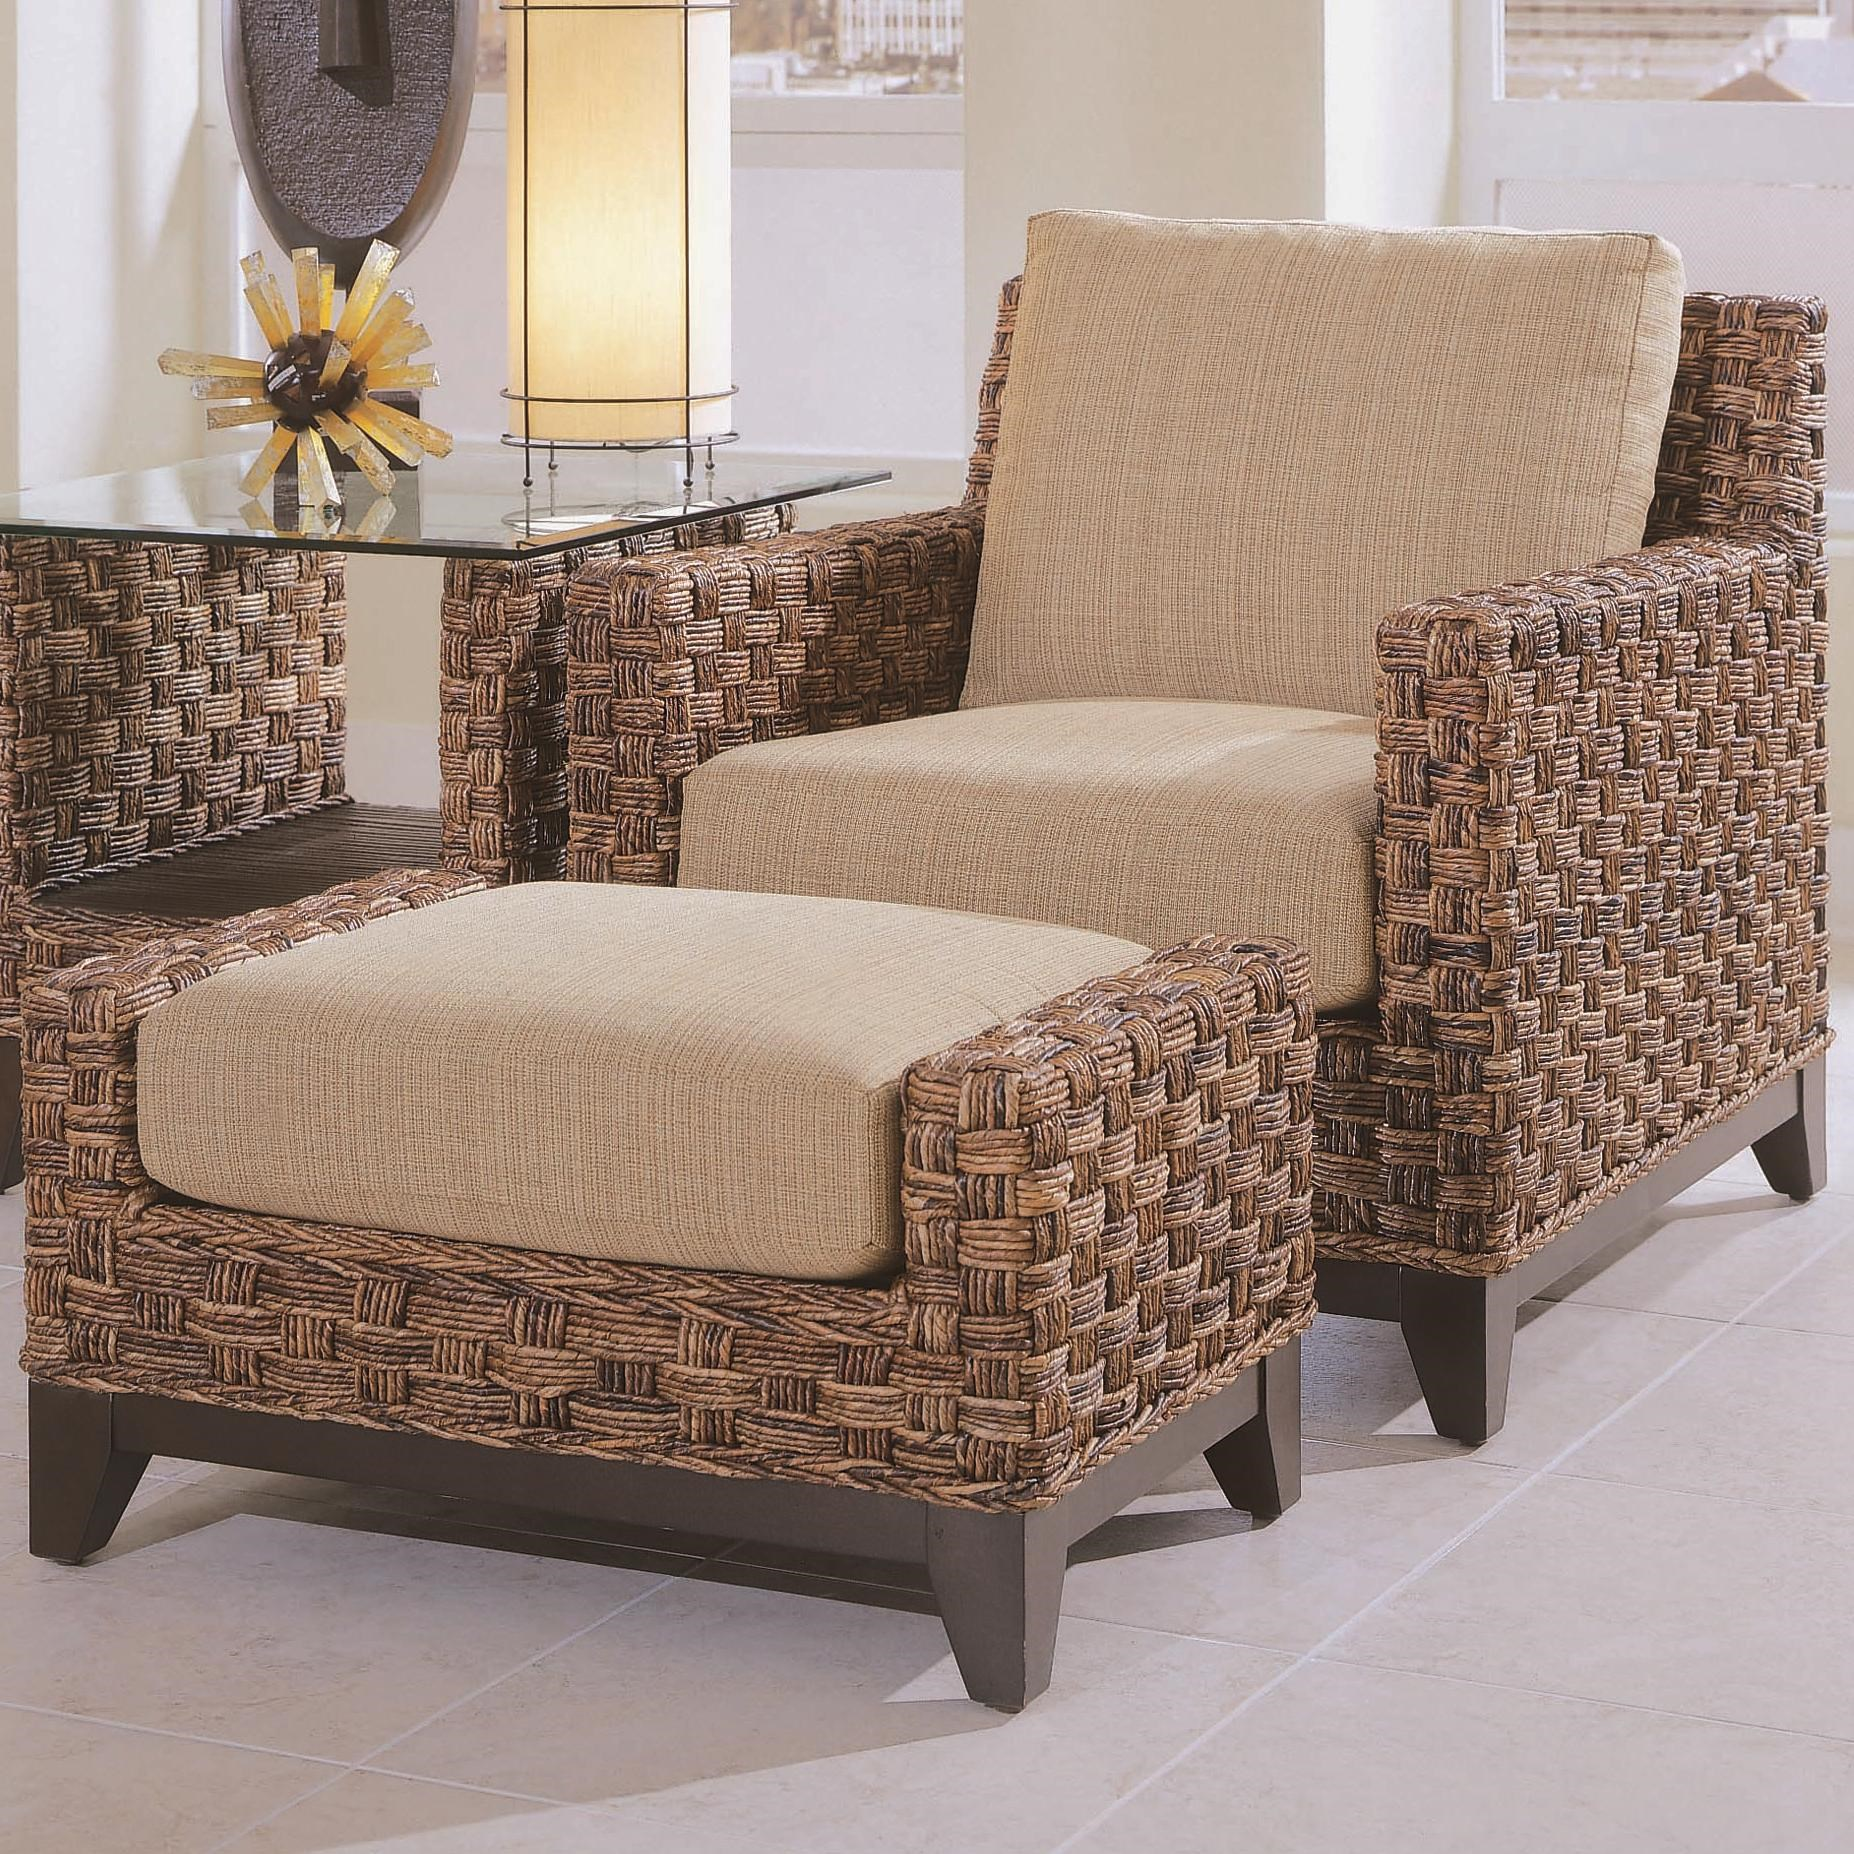 Beau Braxton Culler Tribeca 2960Chair And Ottoman ...